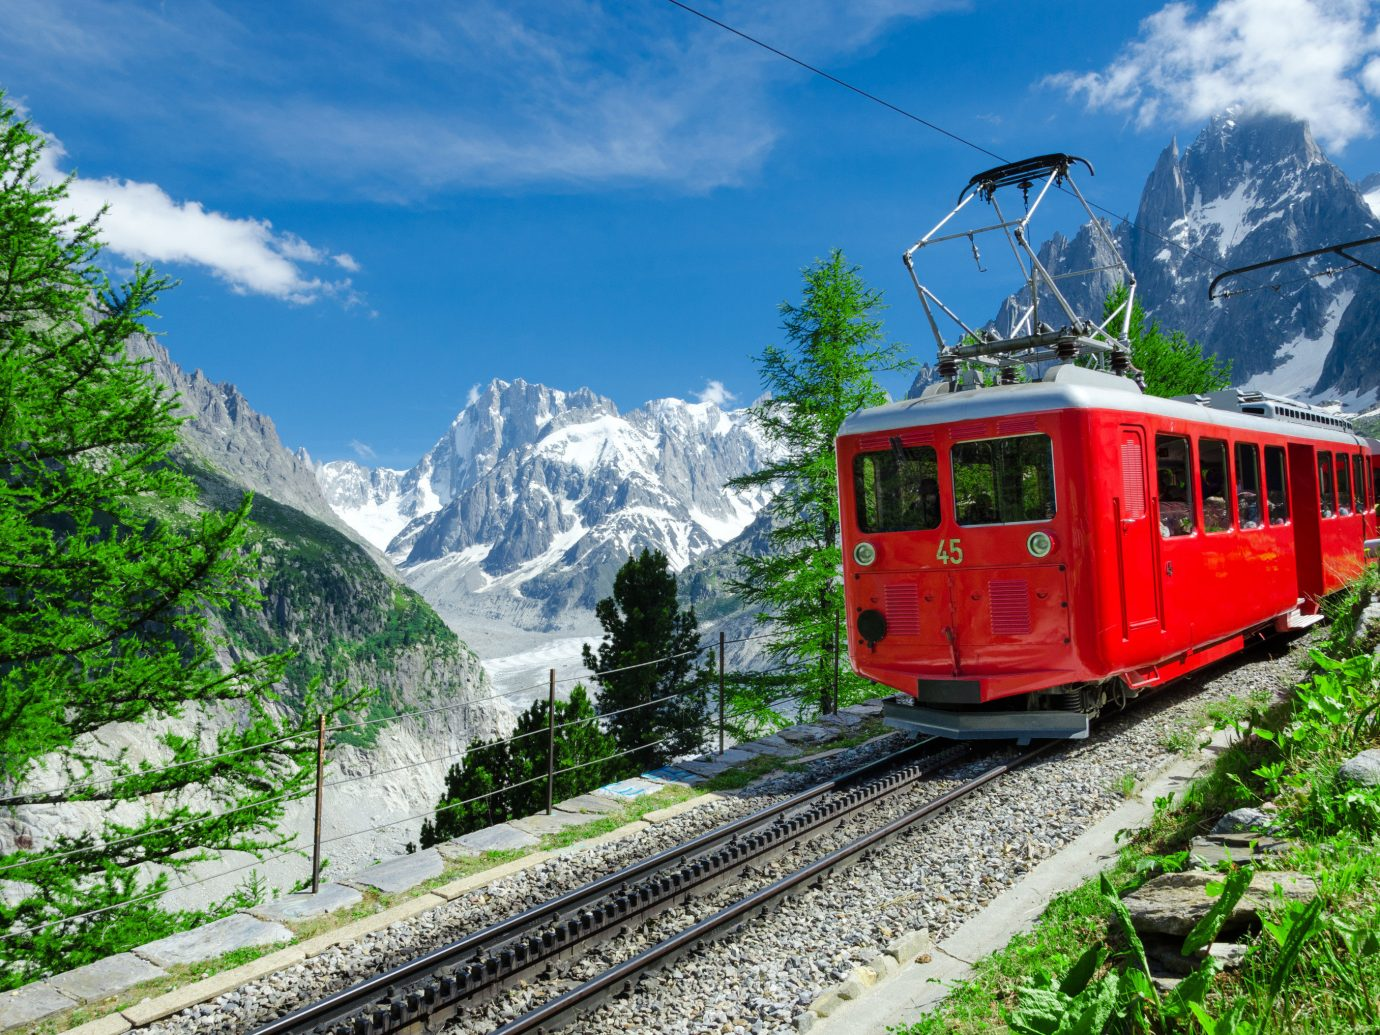 Mountains + Skiing Trip Ideas train sky track outdoor tree mountain range transport mountain Nature cable car rolling stock plant mountainous landforms alps rail transport mode of transport hill station traveling national park railroad car landscape mountain pass mount scenery coming locomotive hill tourism vehicle funicular engine pulling